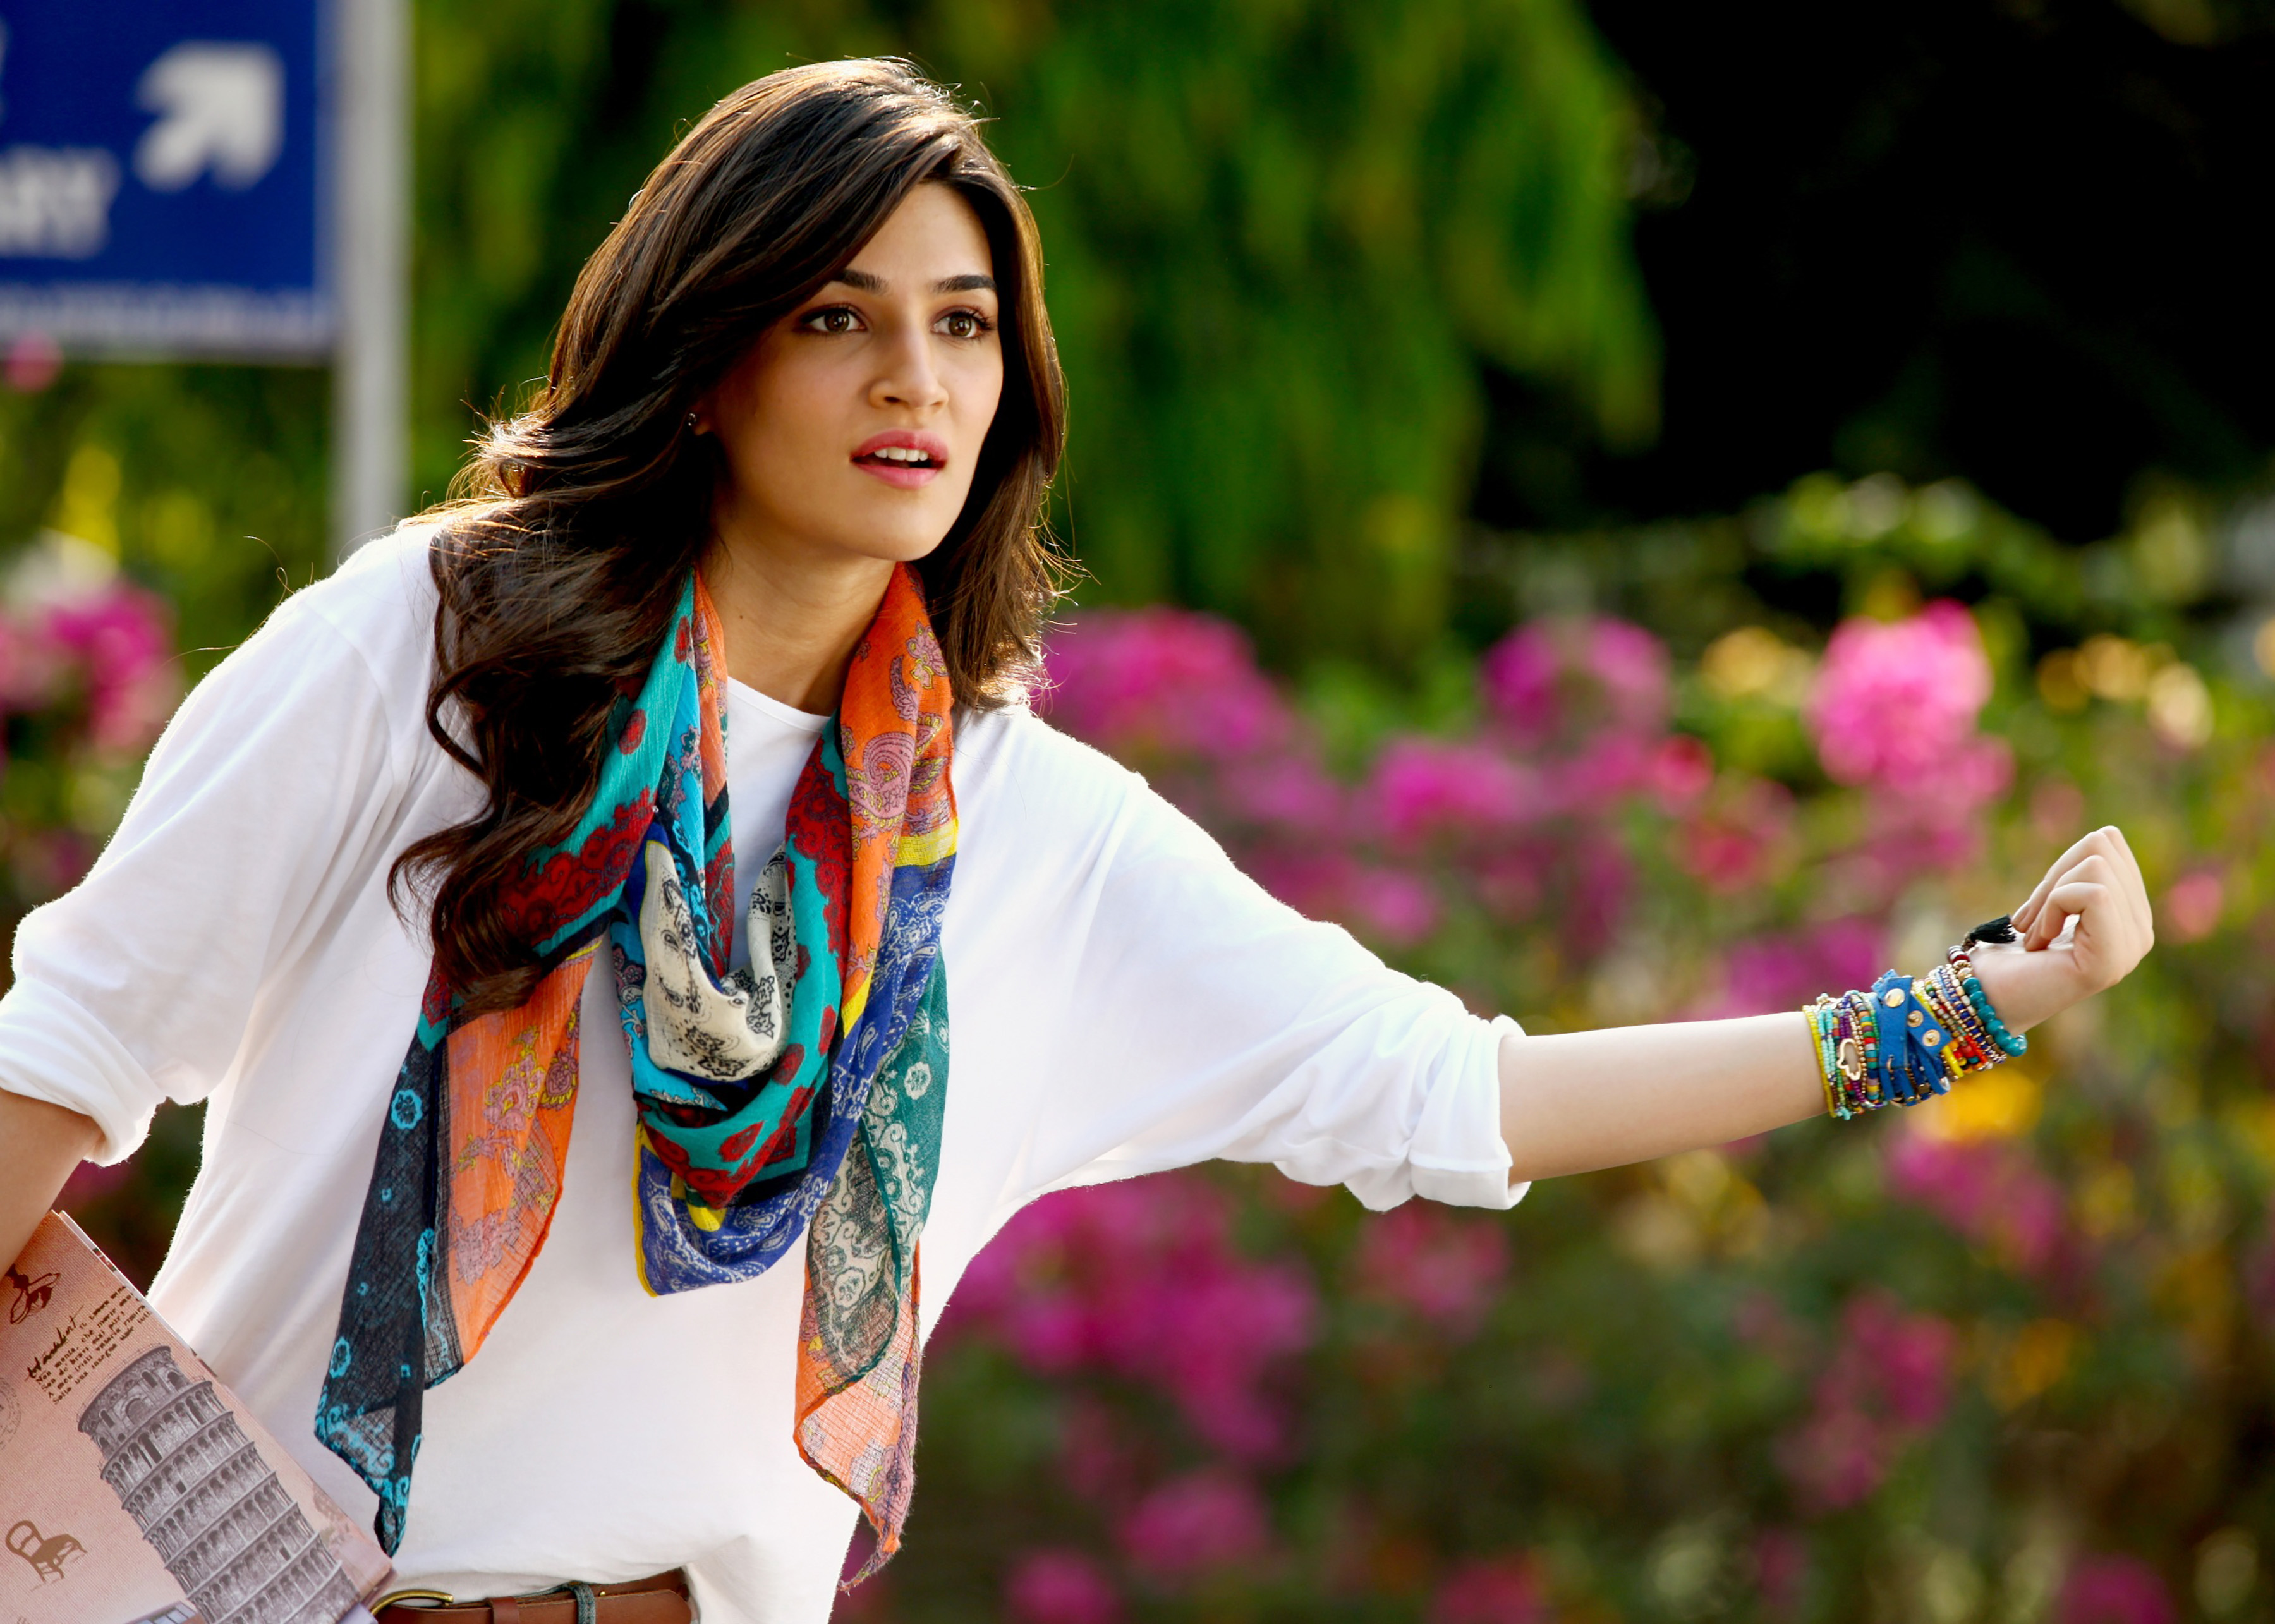 Dilwale wallpapers, Movie, HQ Dilwale pictures   4K Wallpapers 2019